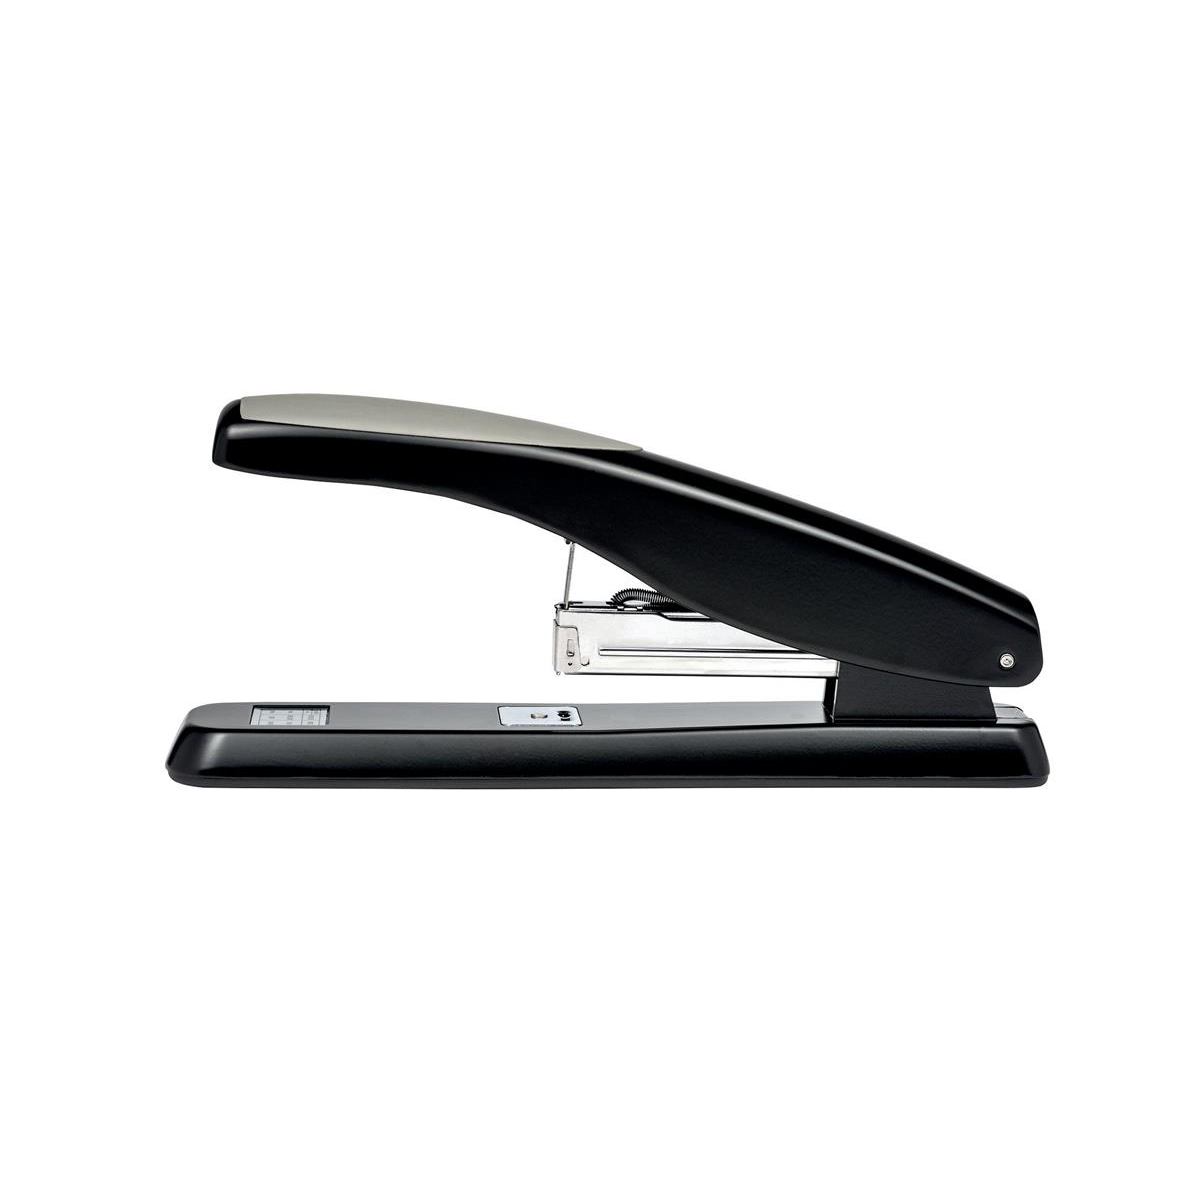 Desktop Staplers 5 Star Office Multi-Purpose Long Handle Stapler 2-50 Sheet Capacity Takes 26/6 or 24/6 Staples Black